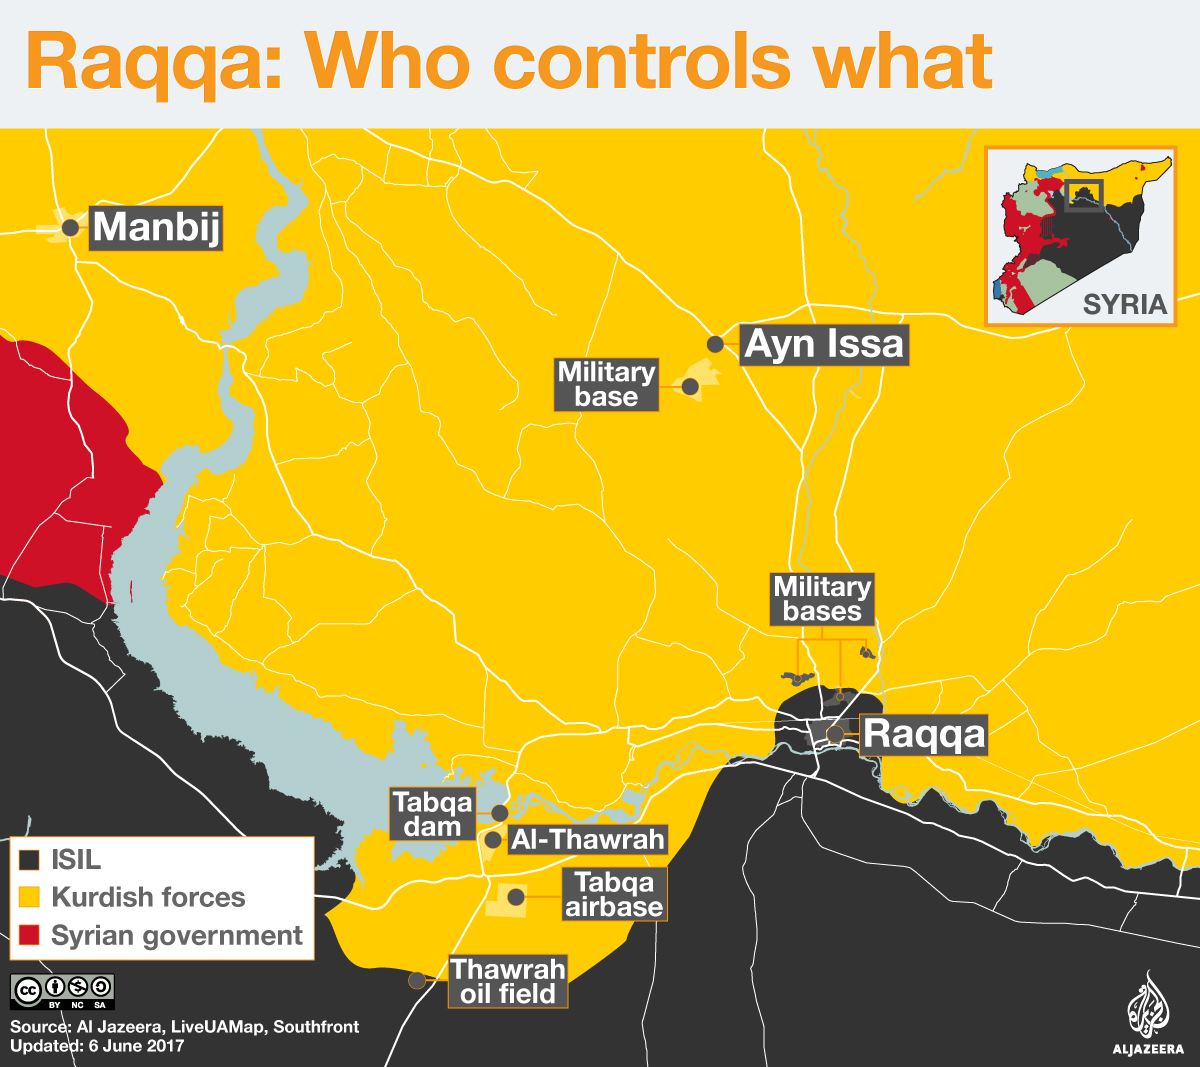 raqqa who controls what map infographic